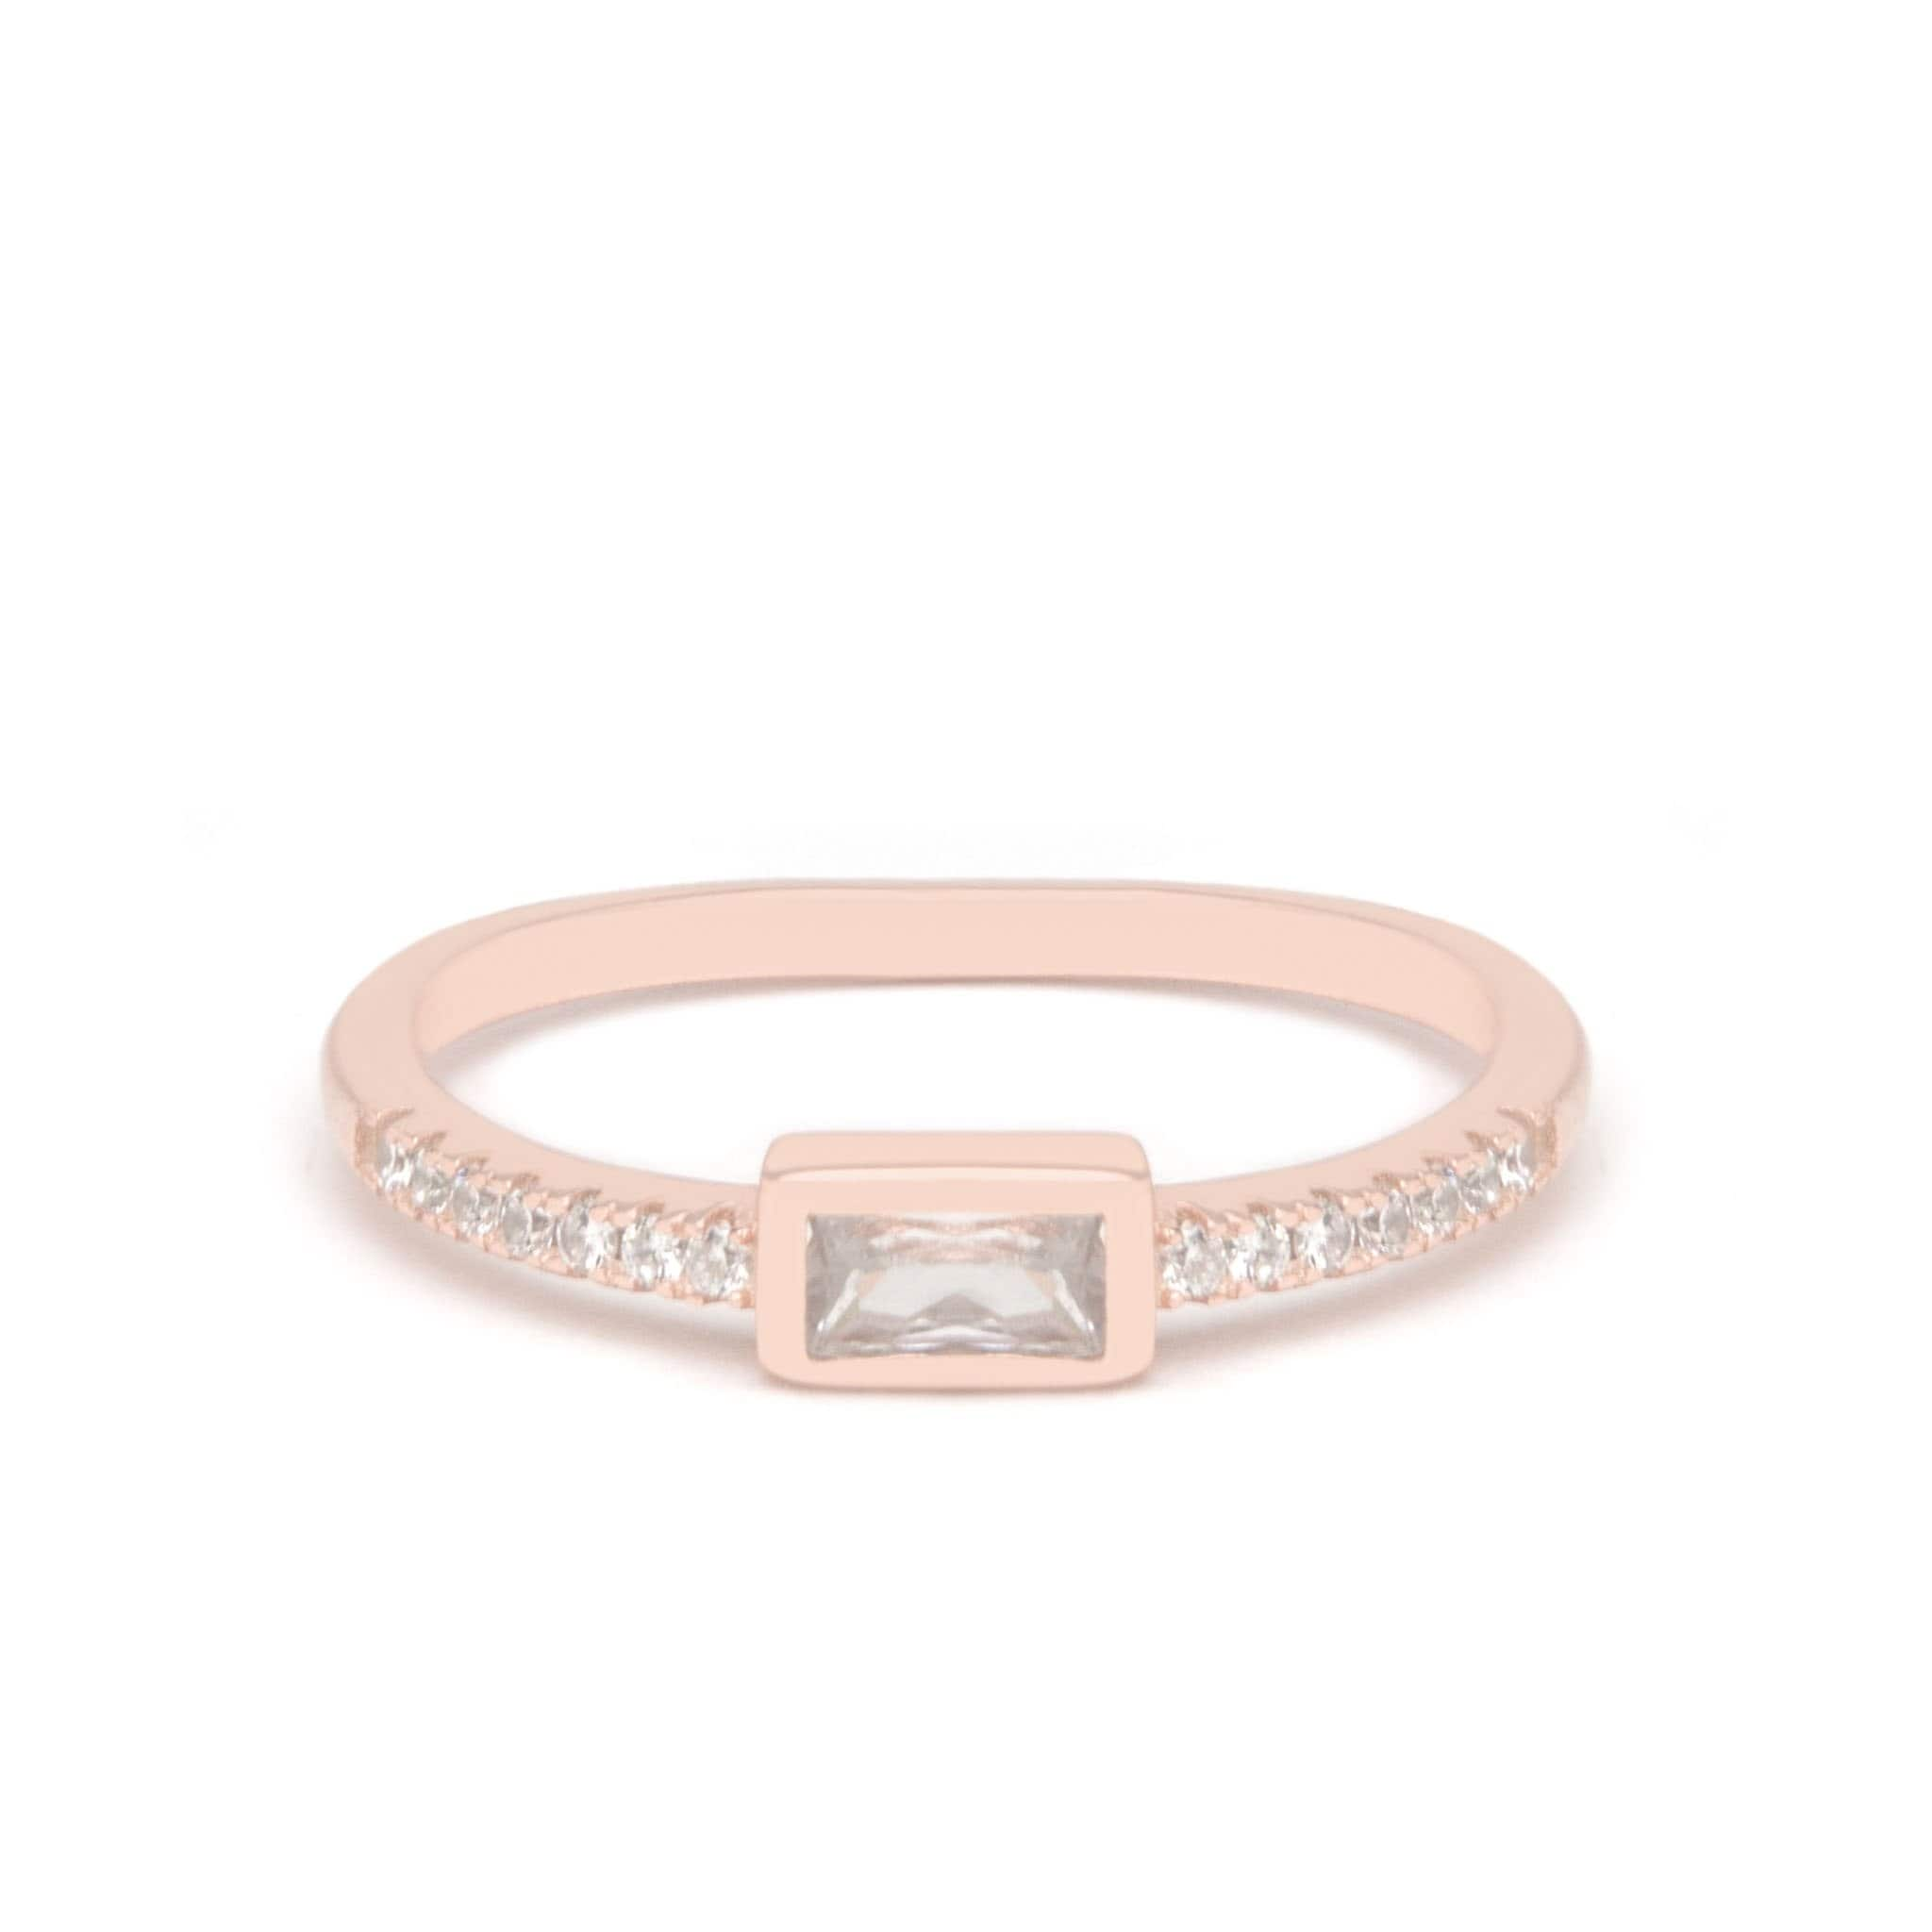 Jeanne's Jewels Rings Rose Gold / 5 Athena